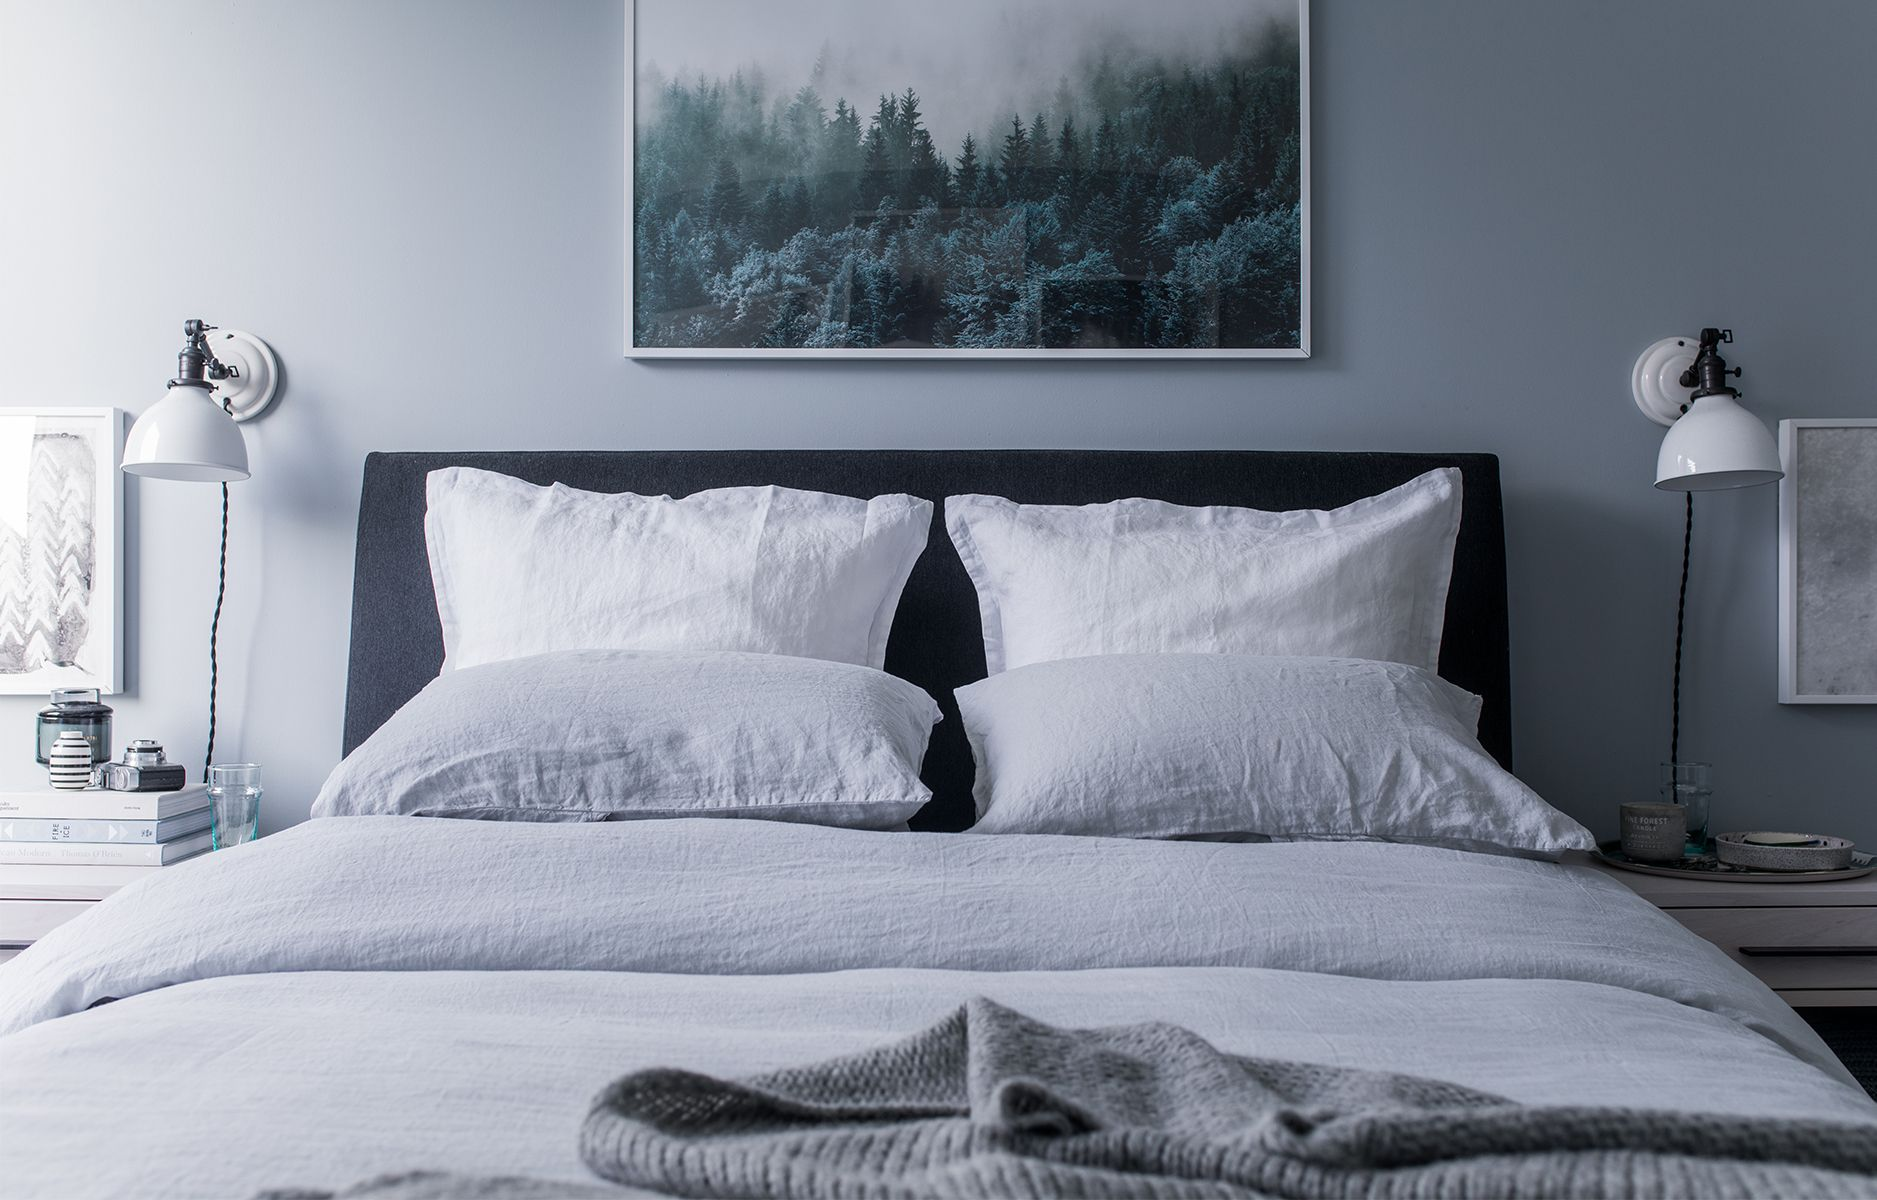 bazaar blogger will taylor tours us through his bedding updates using parachute homes fog linen bedding and shares his morning rituals - Parachute Bedding